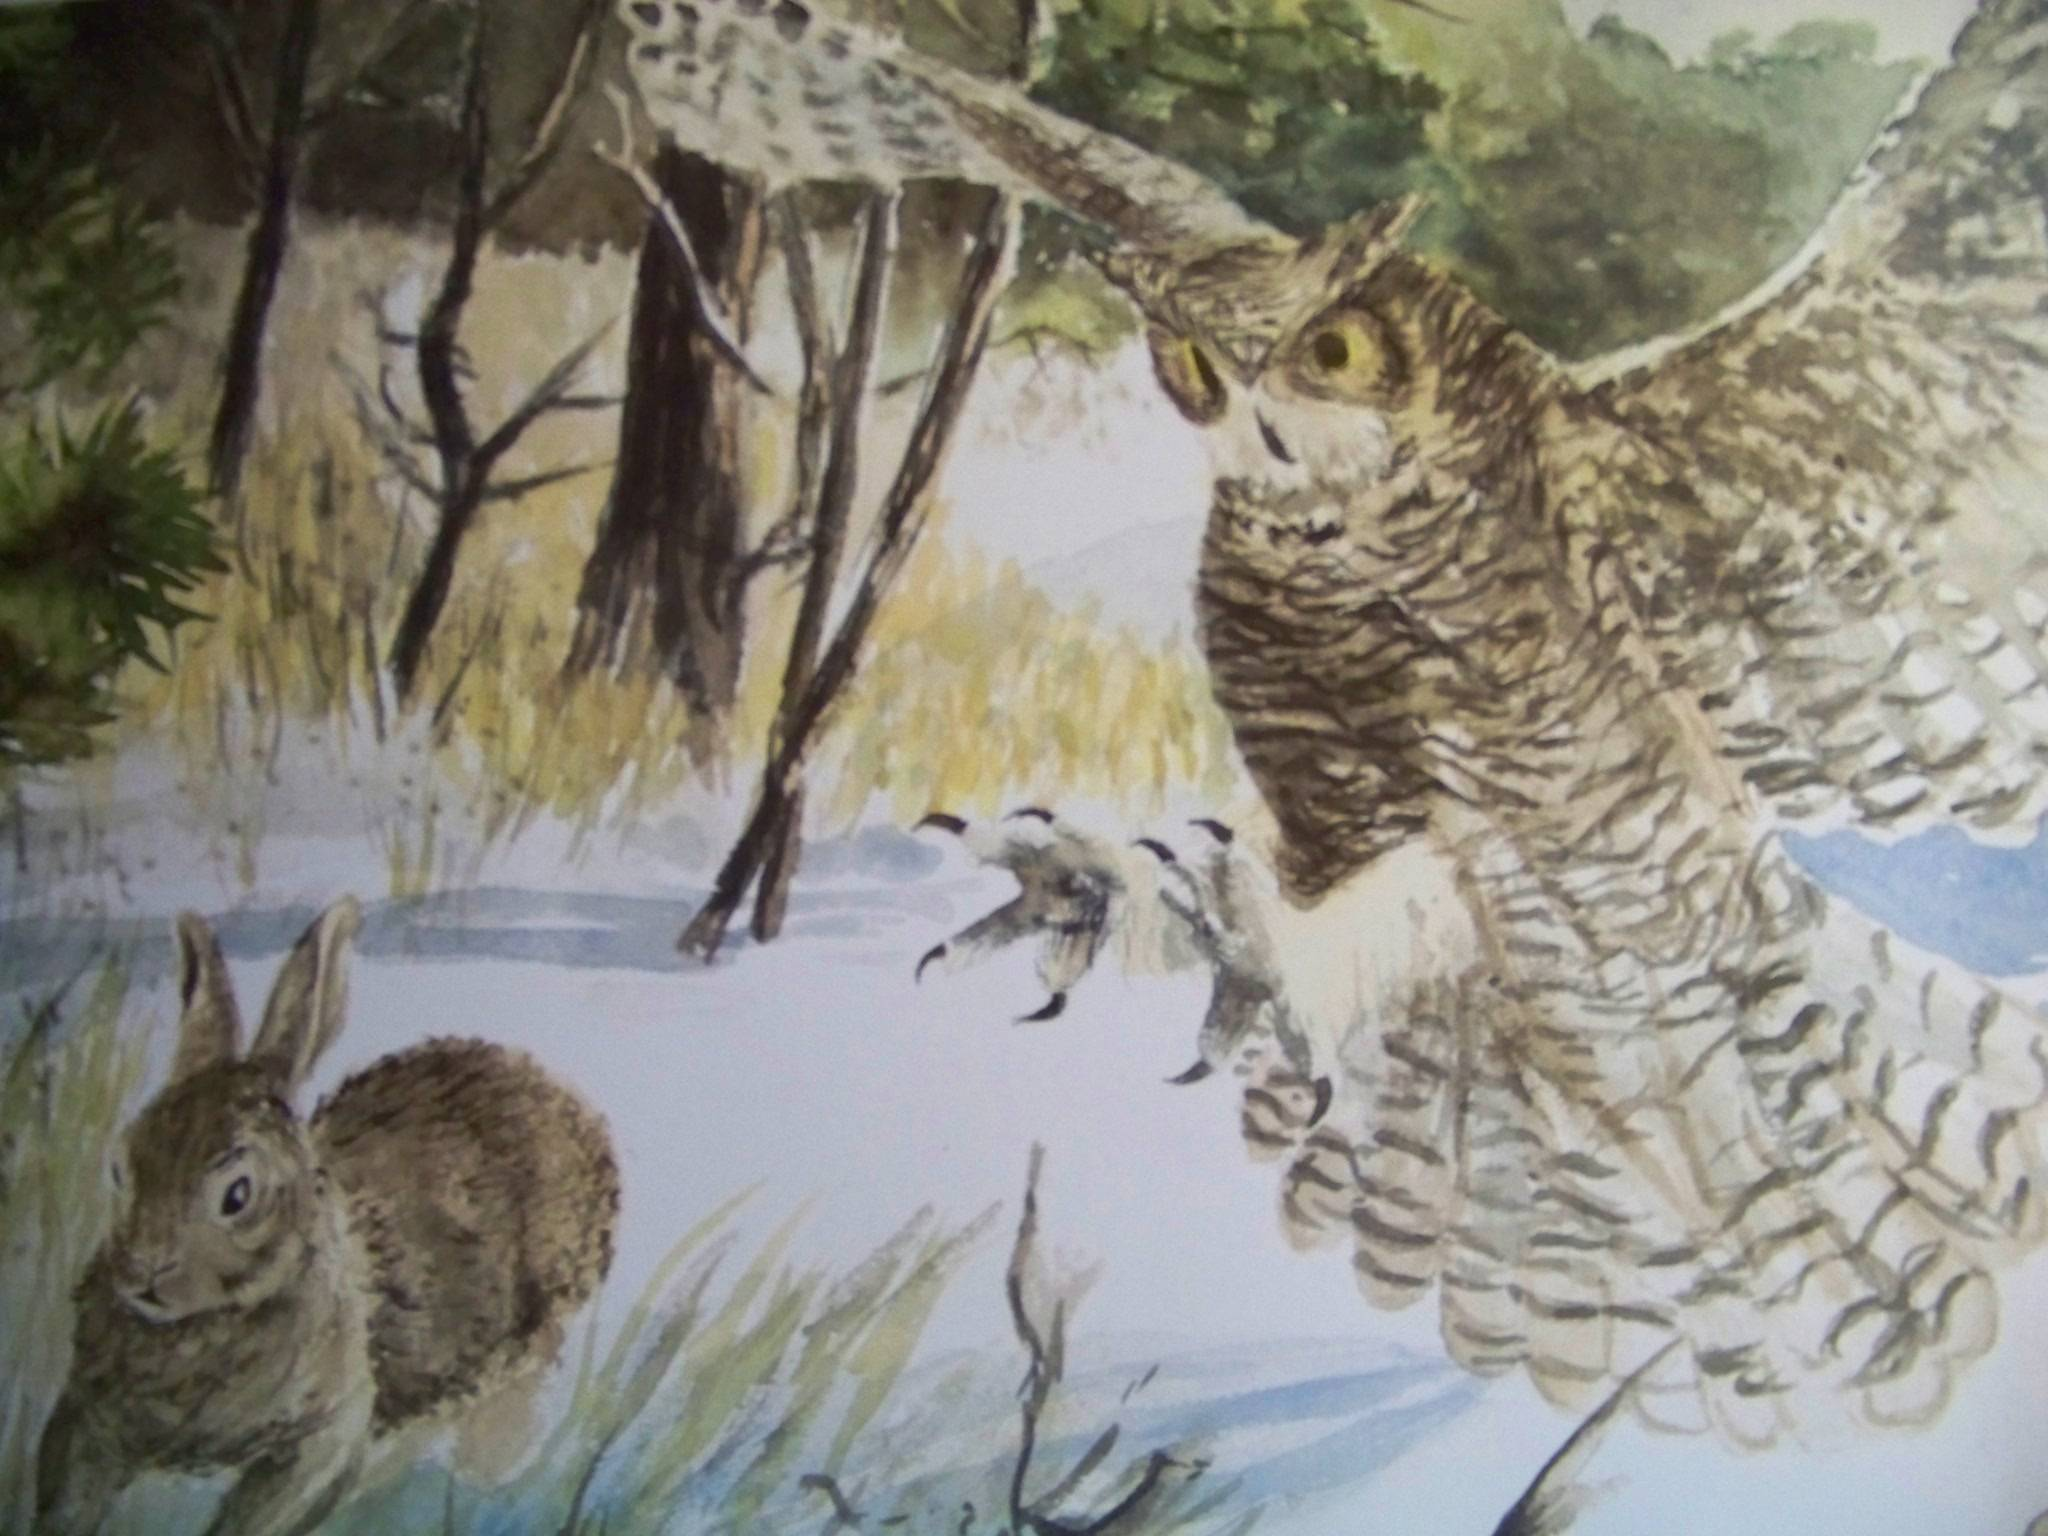 Owl chasing rabbit